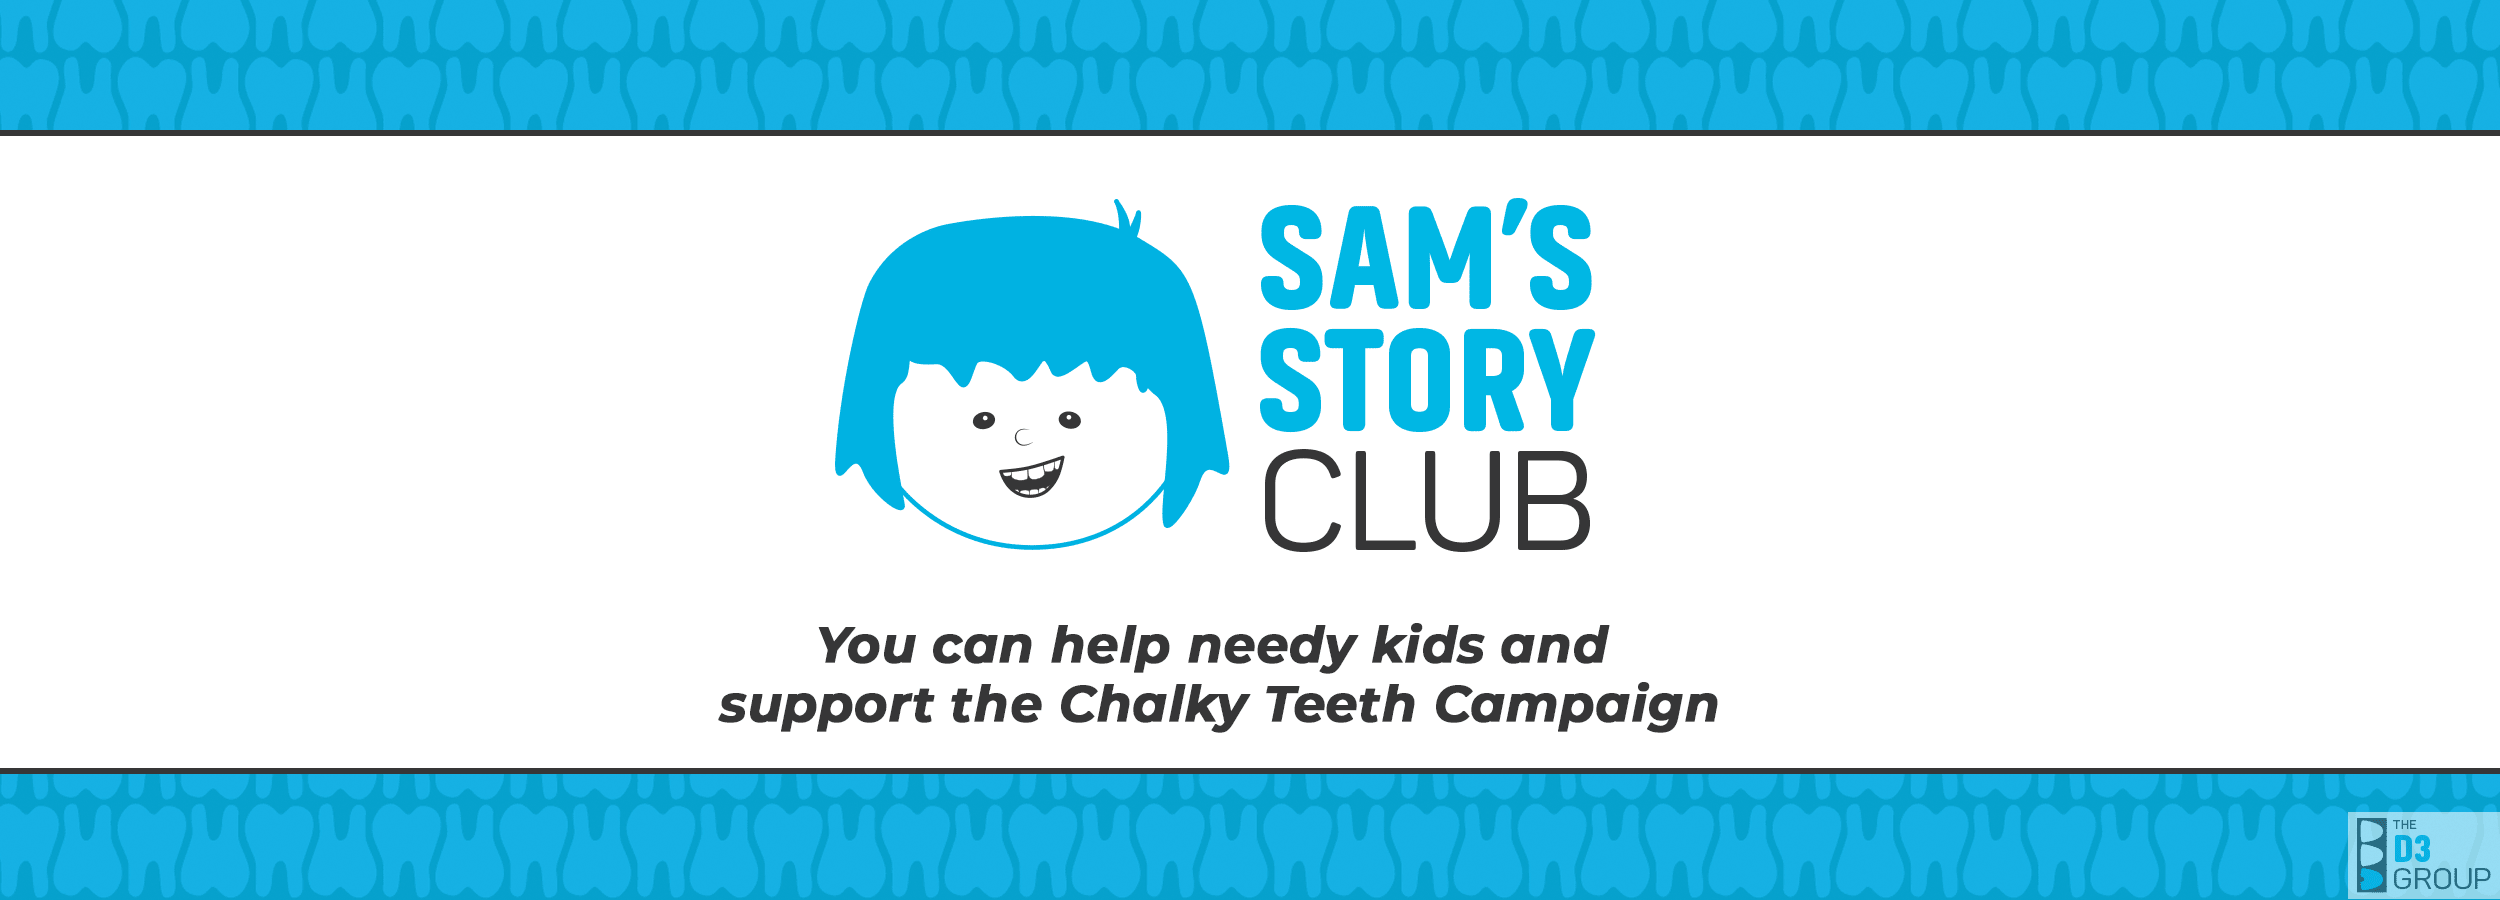 Sam's Story Club - A socially impactful way to help children, medico-dental research, and education worldwide - Main Banner Image